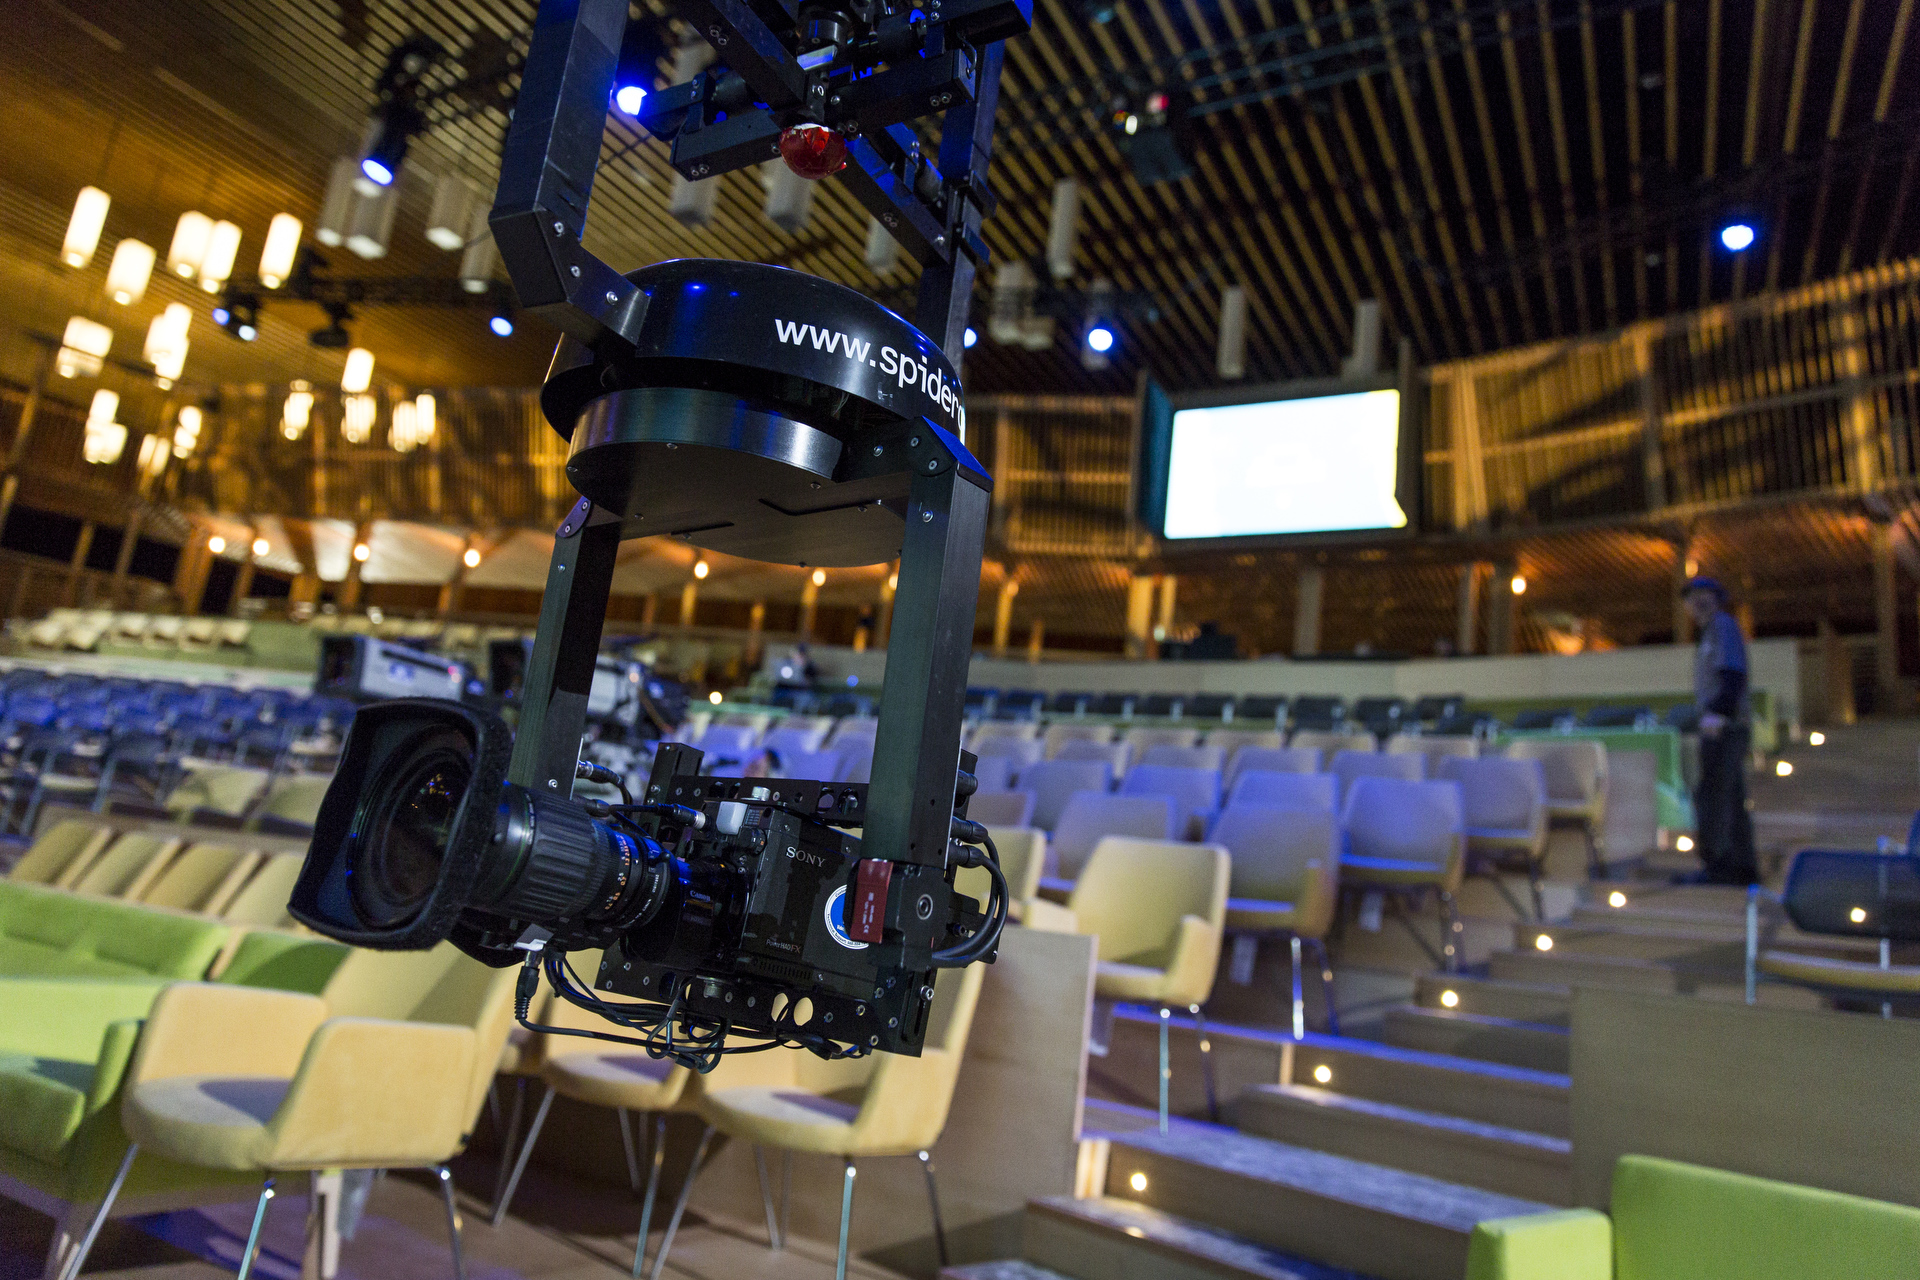 The Spidercam gets set up in the TED2015 theater. Photo: James Duncan Davidson/TED